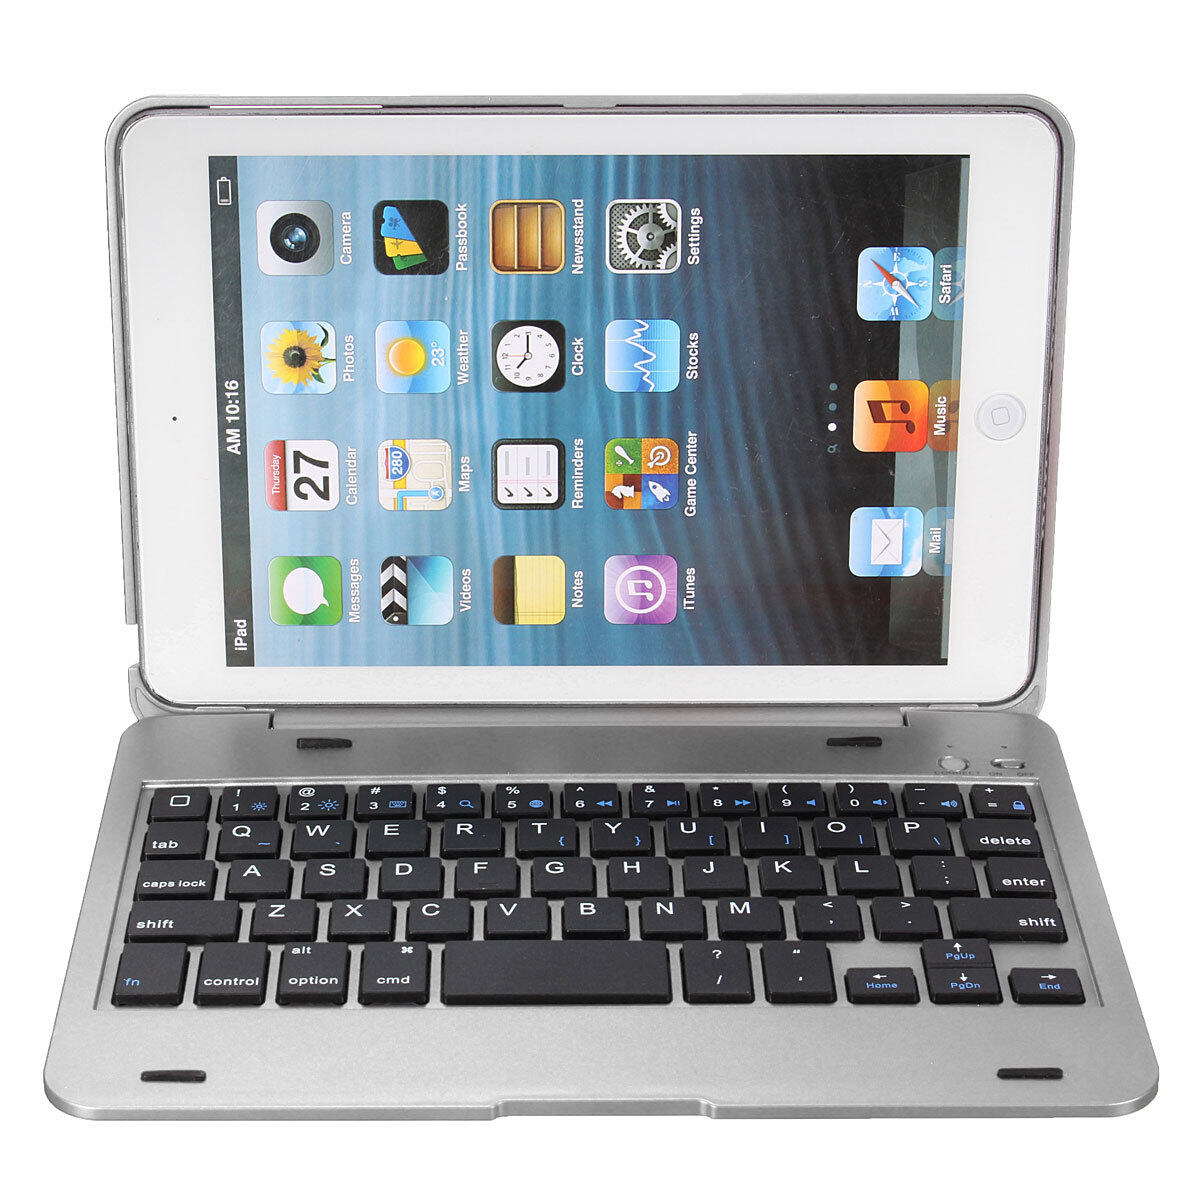 2in1 Bluetooth Keyboard Stand Cover Holder For iPad Mini 1 2 3 Silver - intl